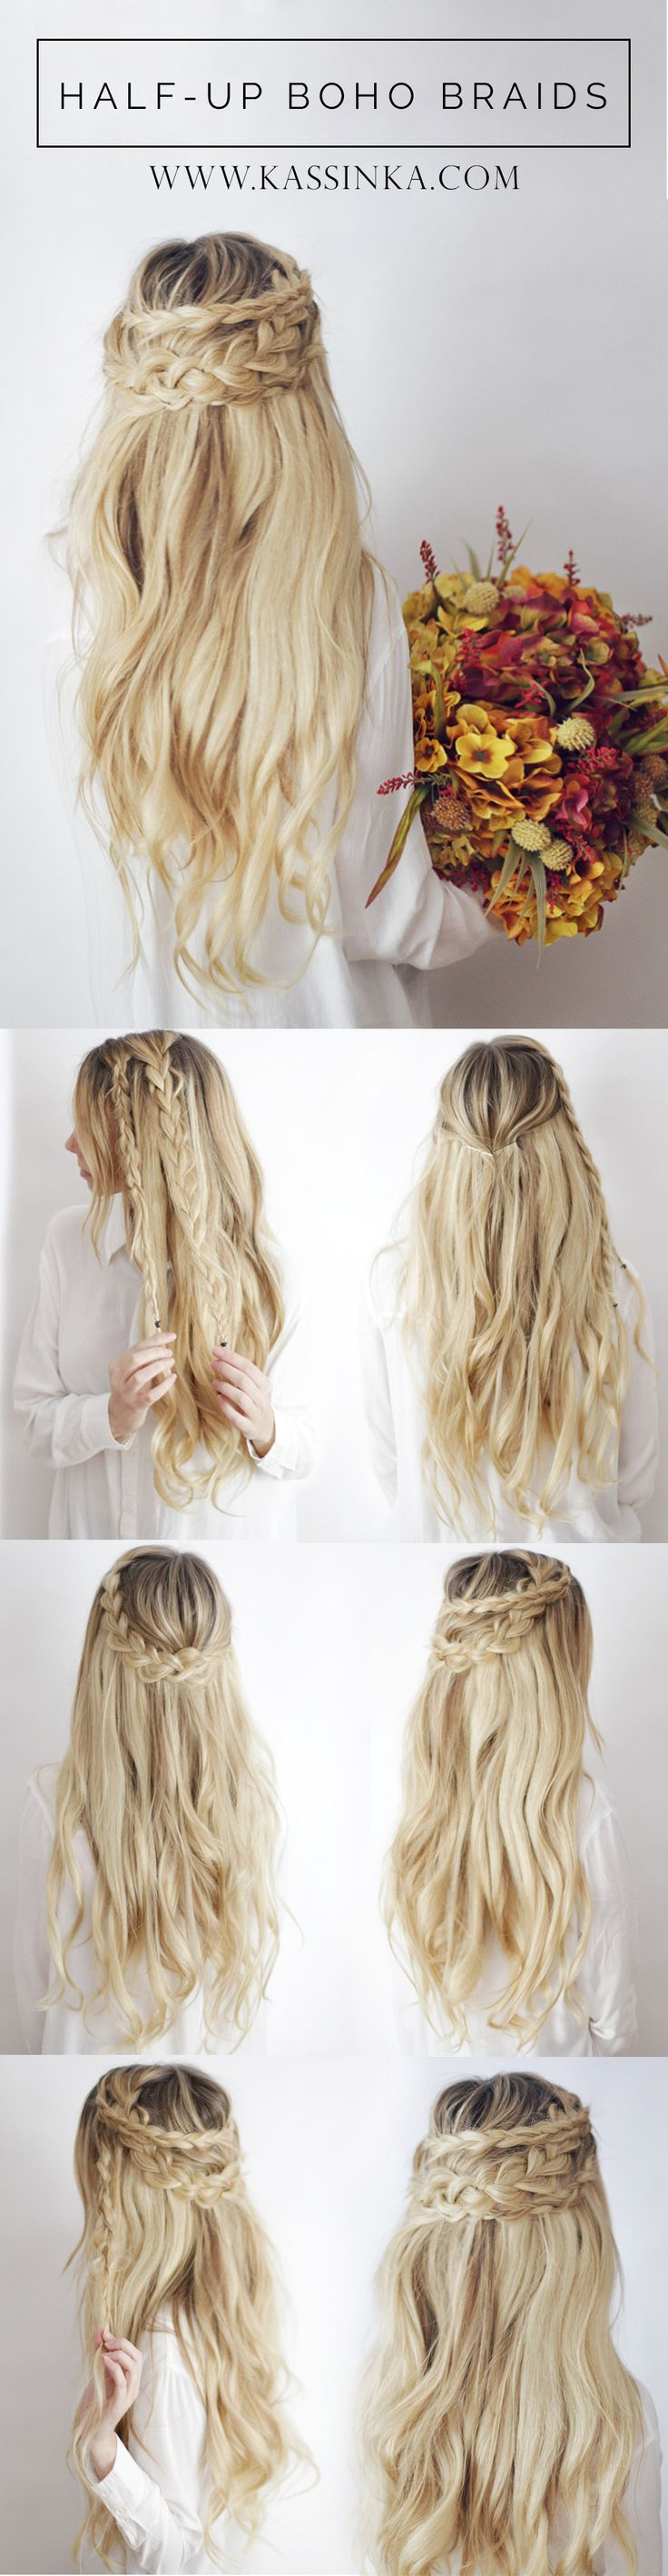 Magnificent 1000 Ideas About Diy Hairstyles On Pinterest Hairstyles Easy Short Hairstyles Gunalazisus